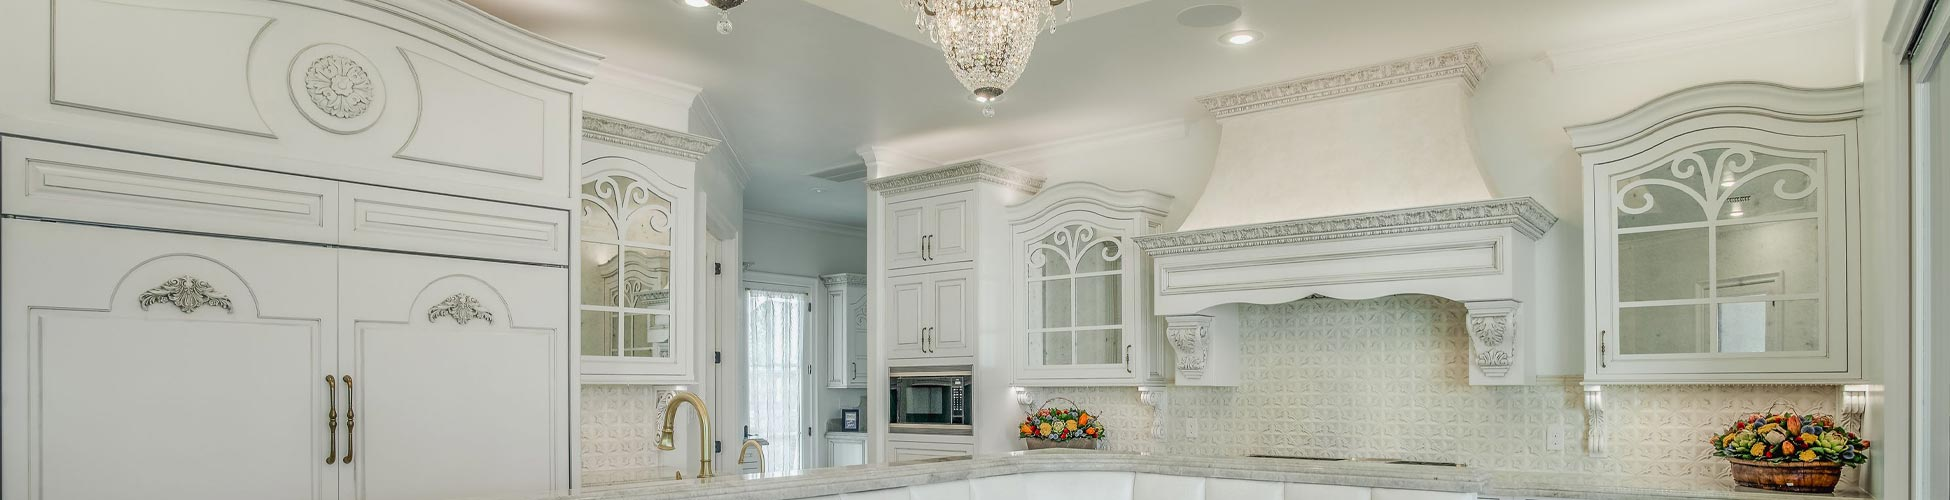 elegant-white-cabinets-in-kitchen.jpg